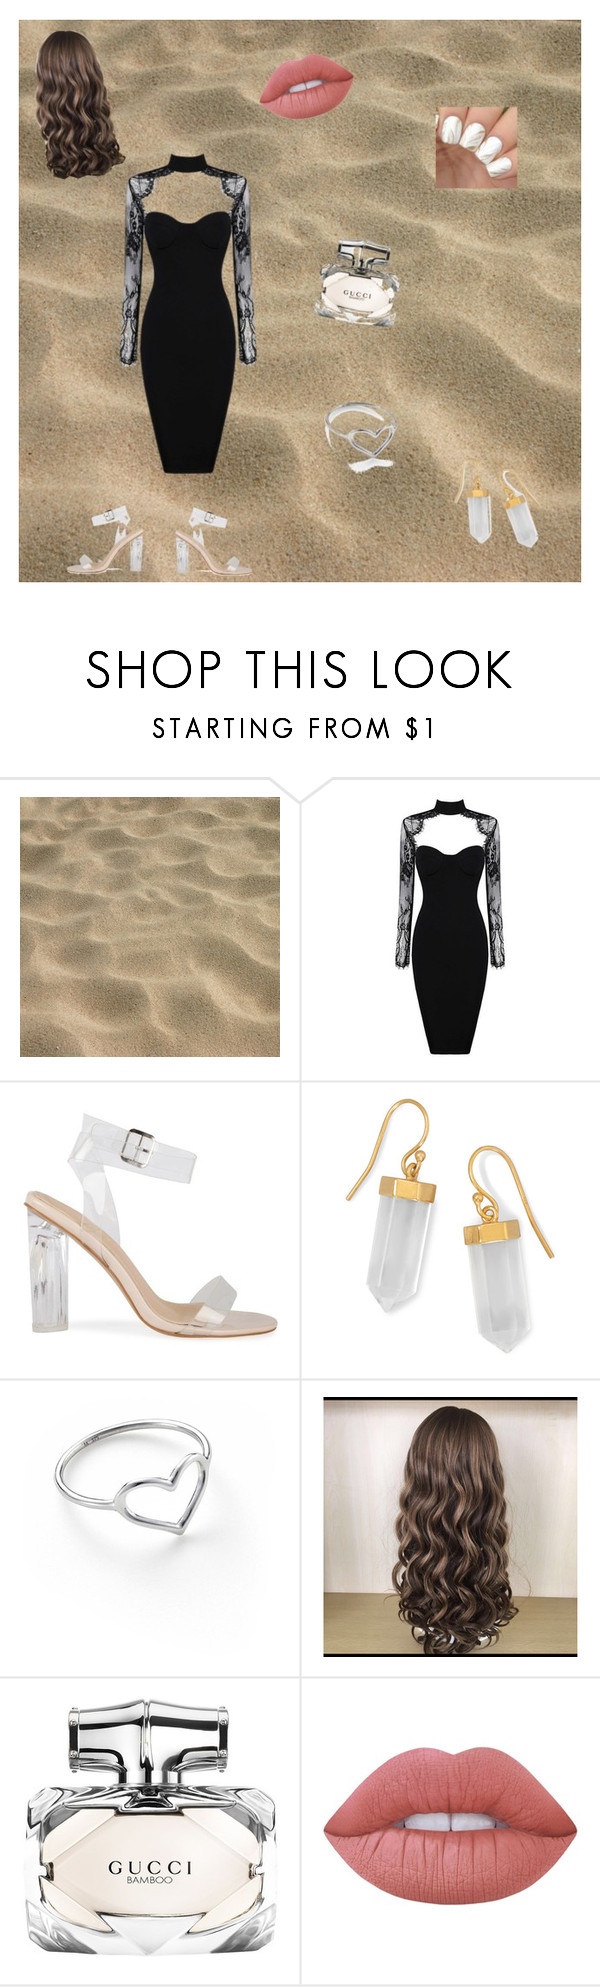 """""""Prom look #1"""" by emjaisme on Polyvore featuring BillyTheTree, Jordan Askill, Gucci and Lime Crime"""